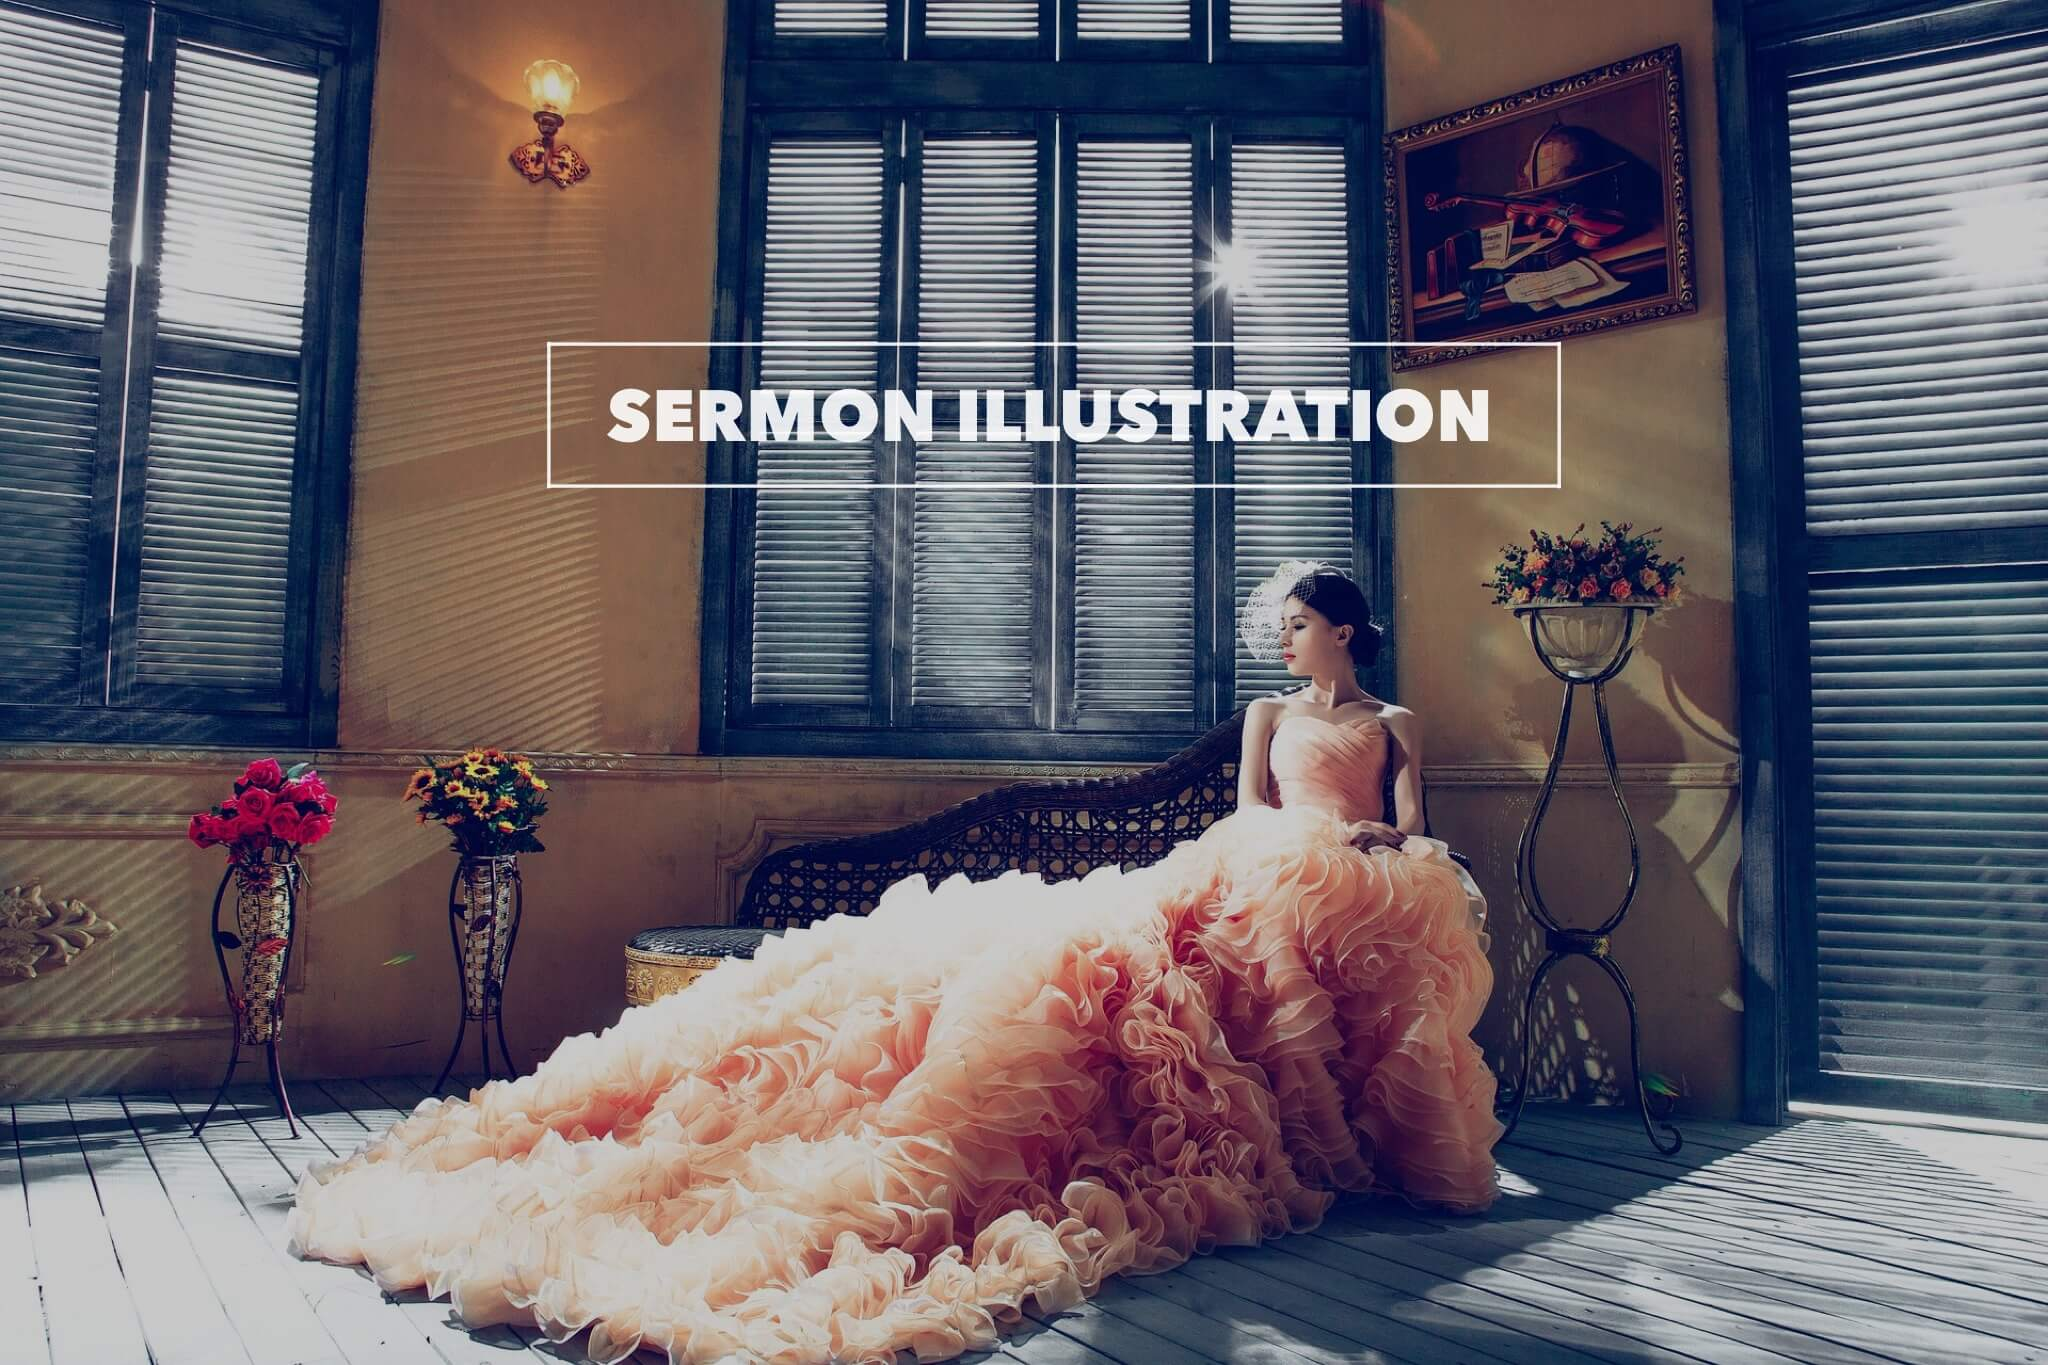 Two Famous Pastors Named John With Two Very Different Marriages Sermon Illustration